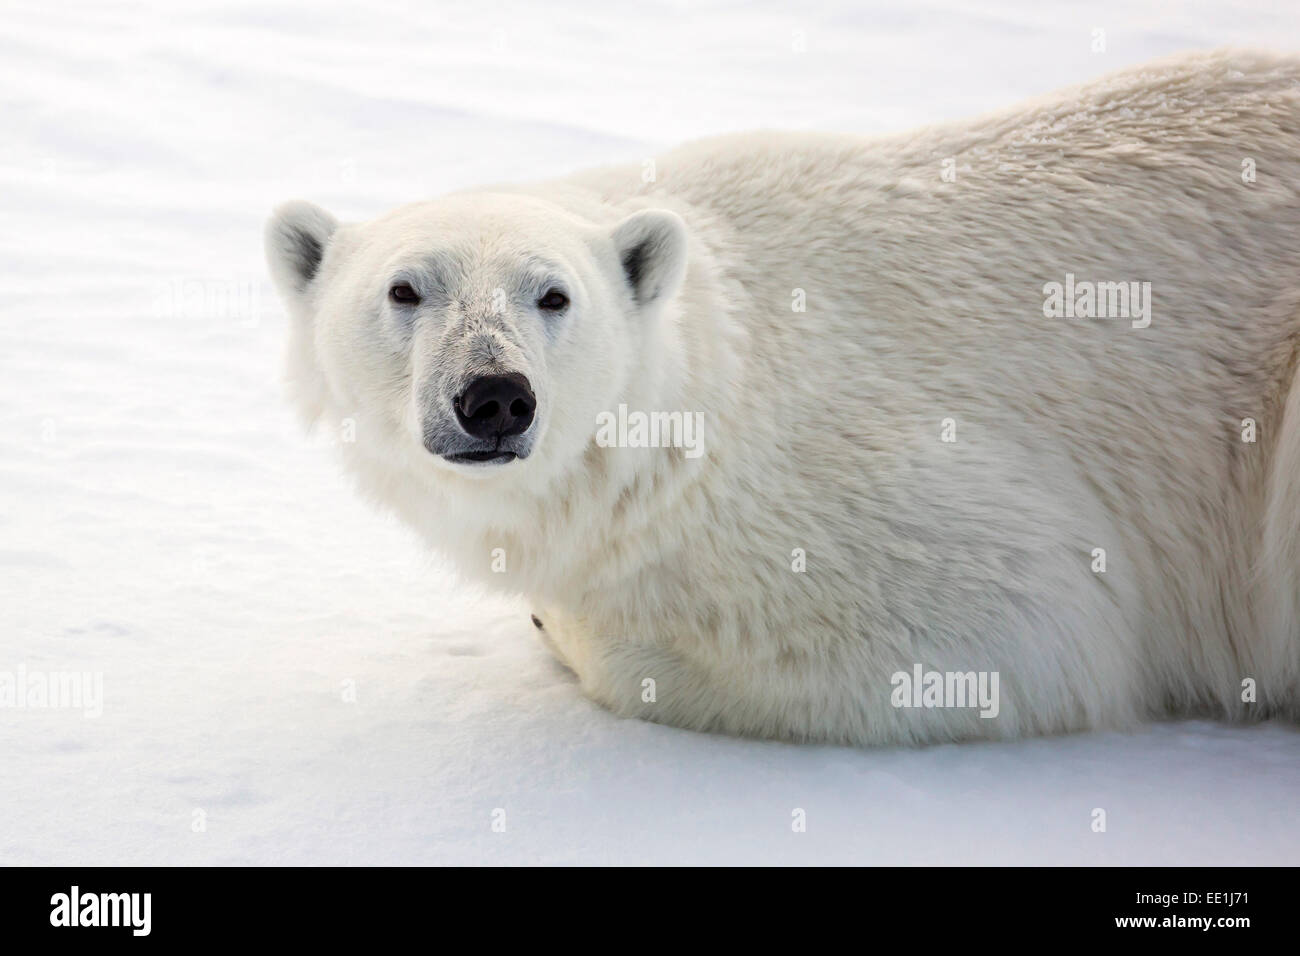 Adult polar bear (Ursus maritimus) on first year sea ice in Olga Strait, near Edgeoya, Svalbard, Arctic, Norway, Stock Photo